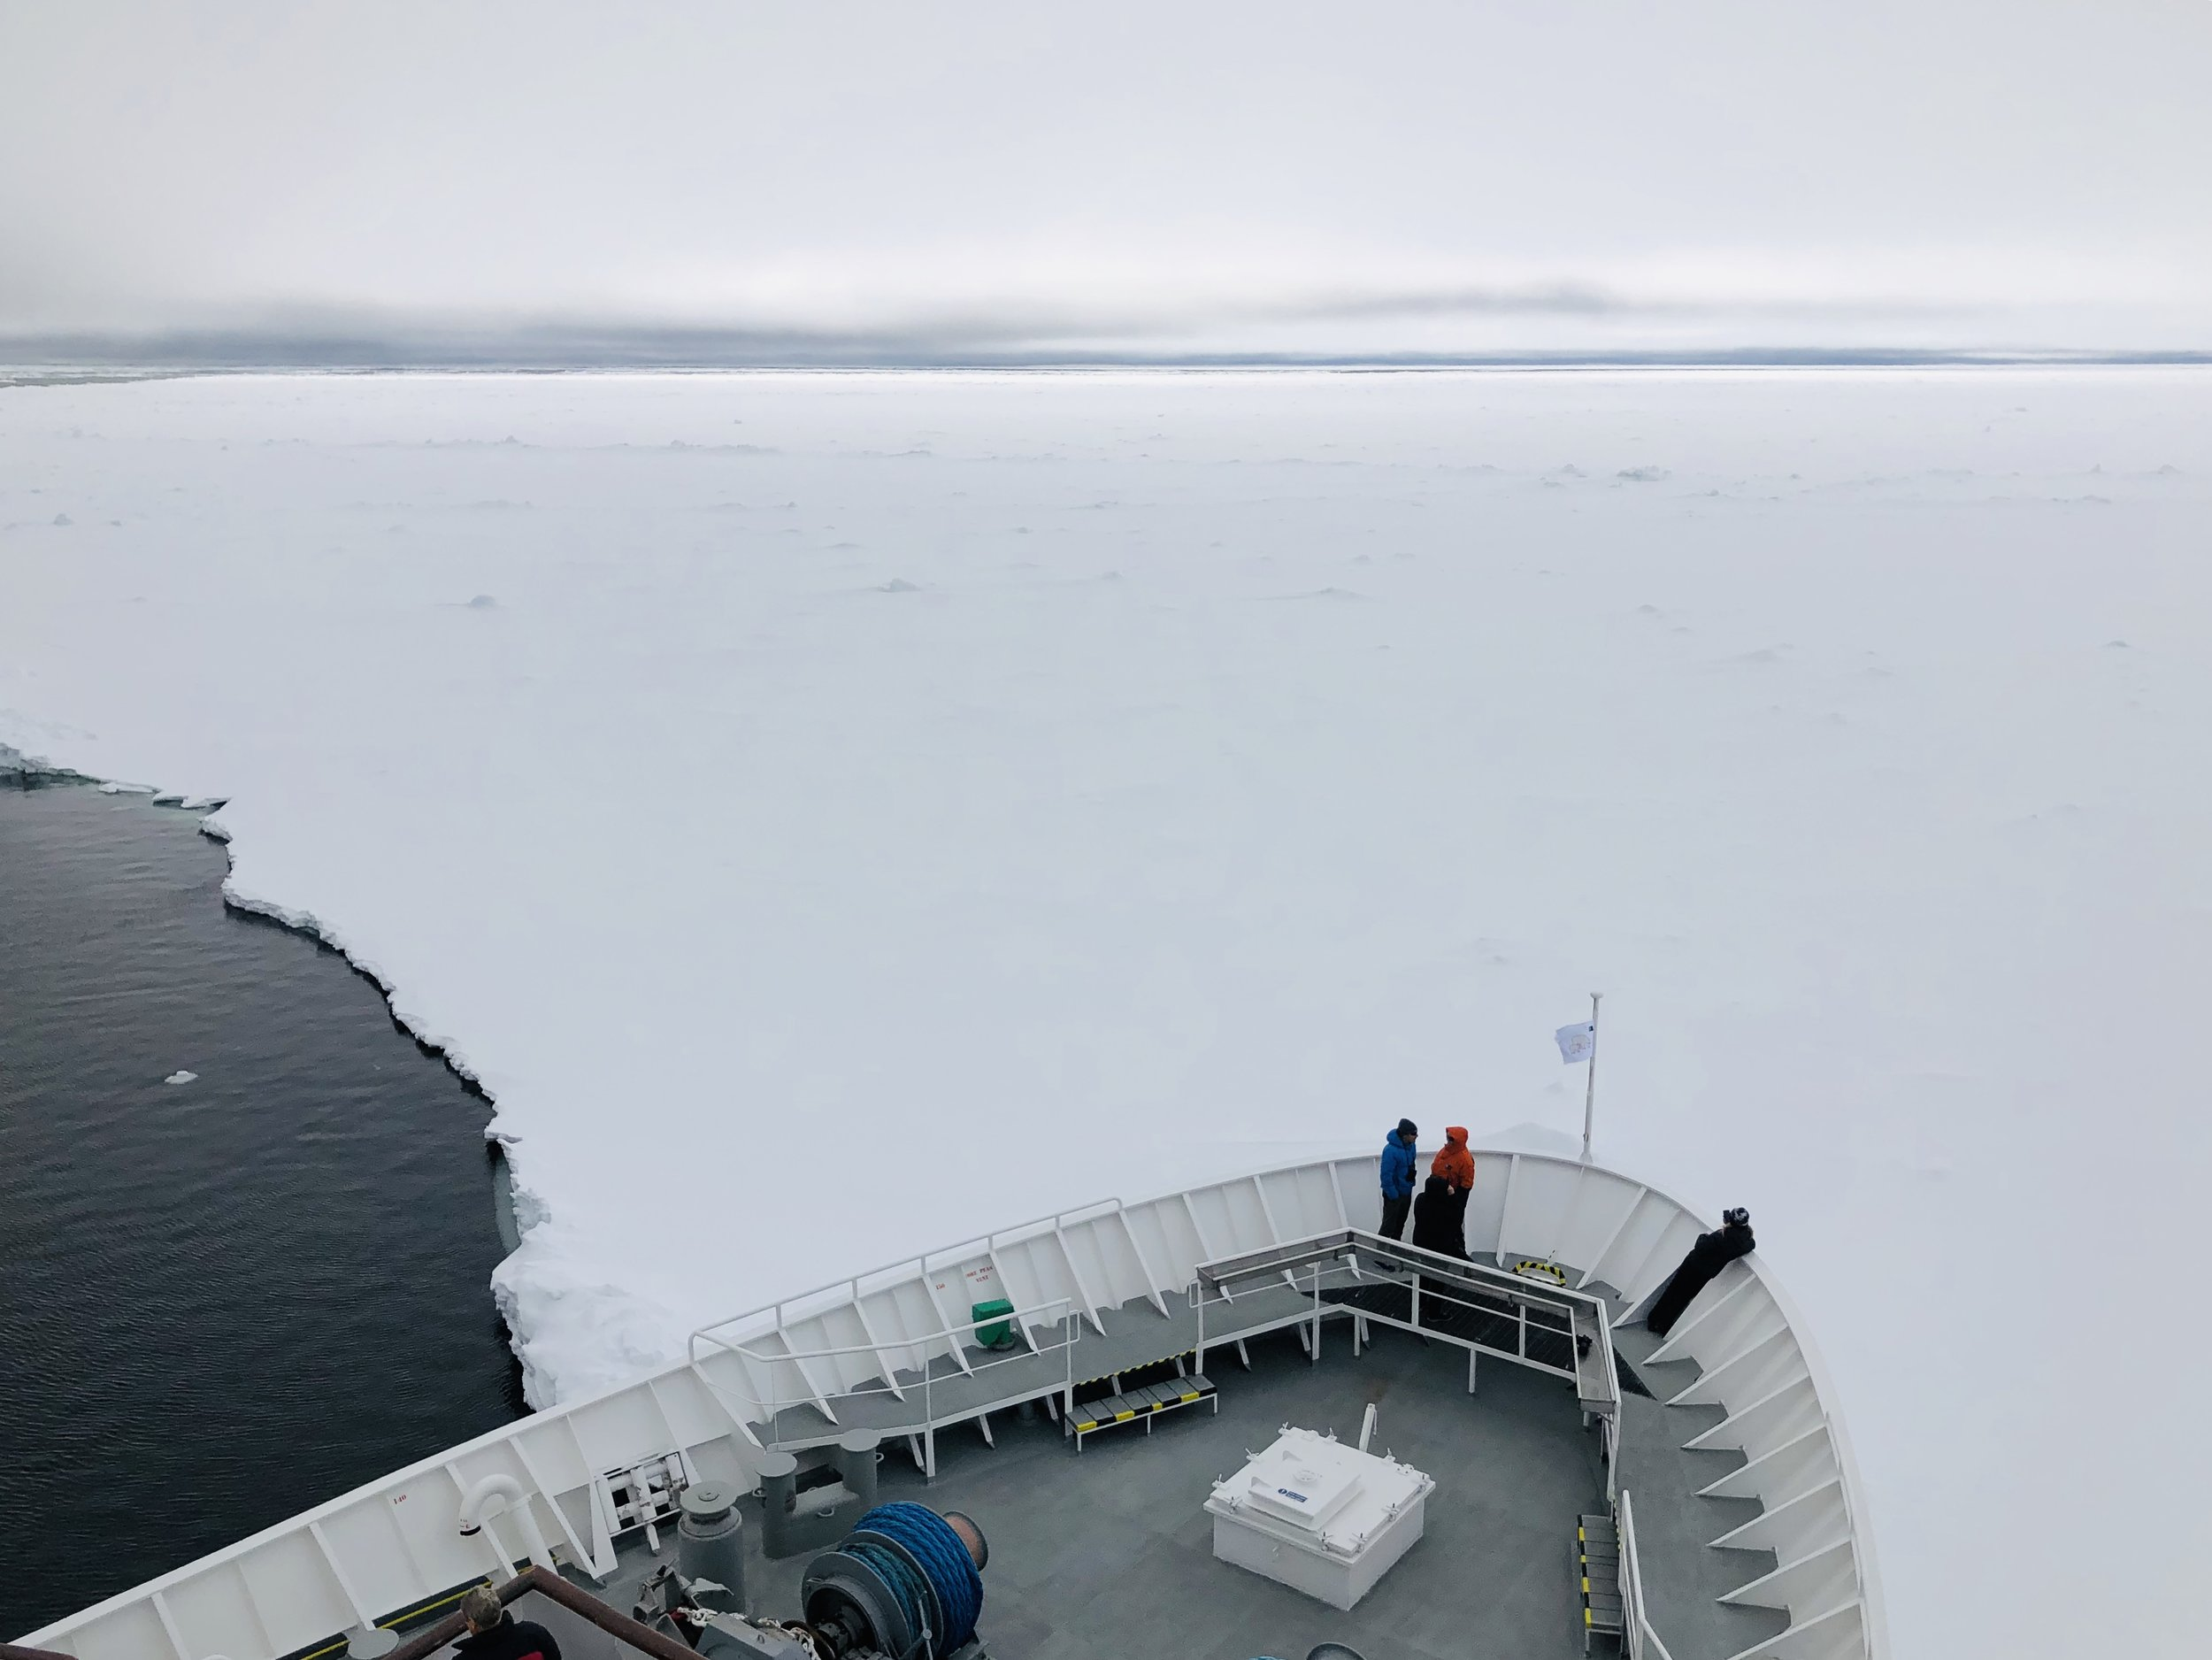 The National Geographic Explorer hitting the ice at 79.6 degrees North. This was where I plunged!